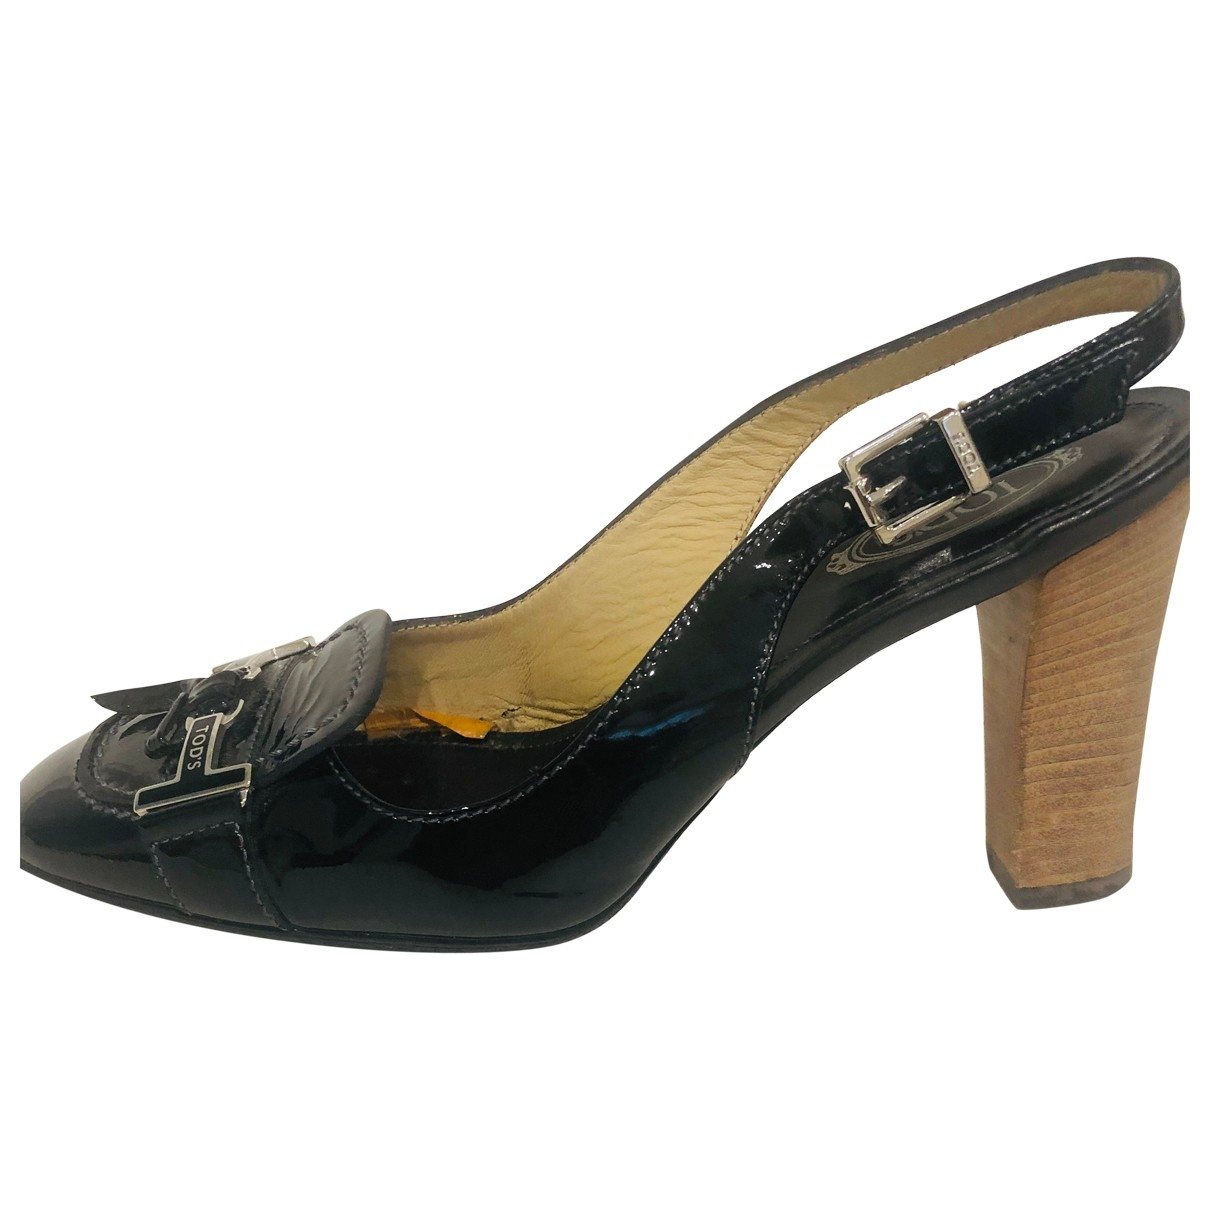 Tod's \N Black Patent leather Heels for Women 36.5 EU